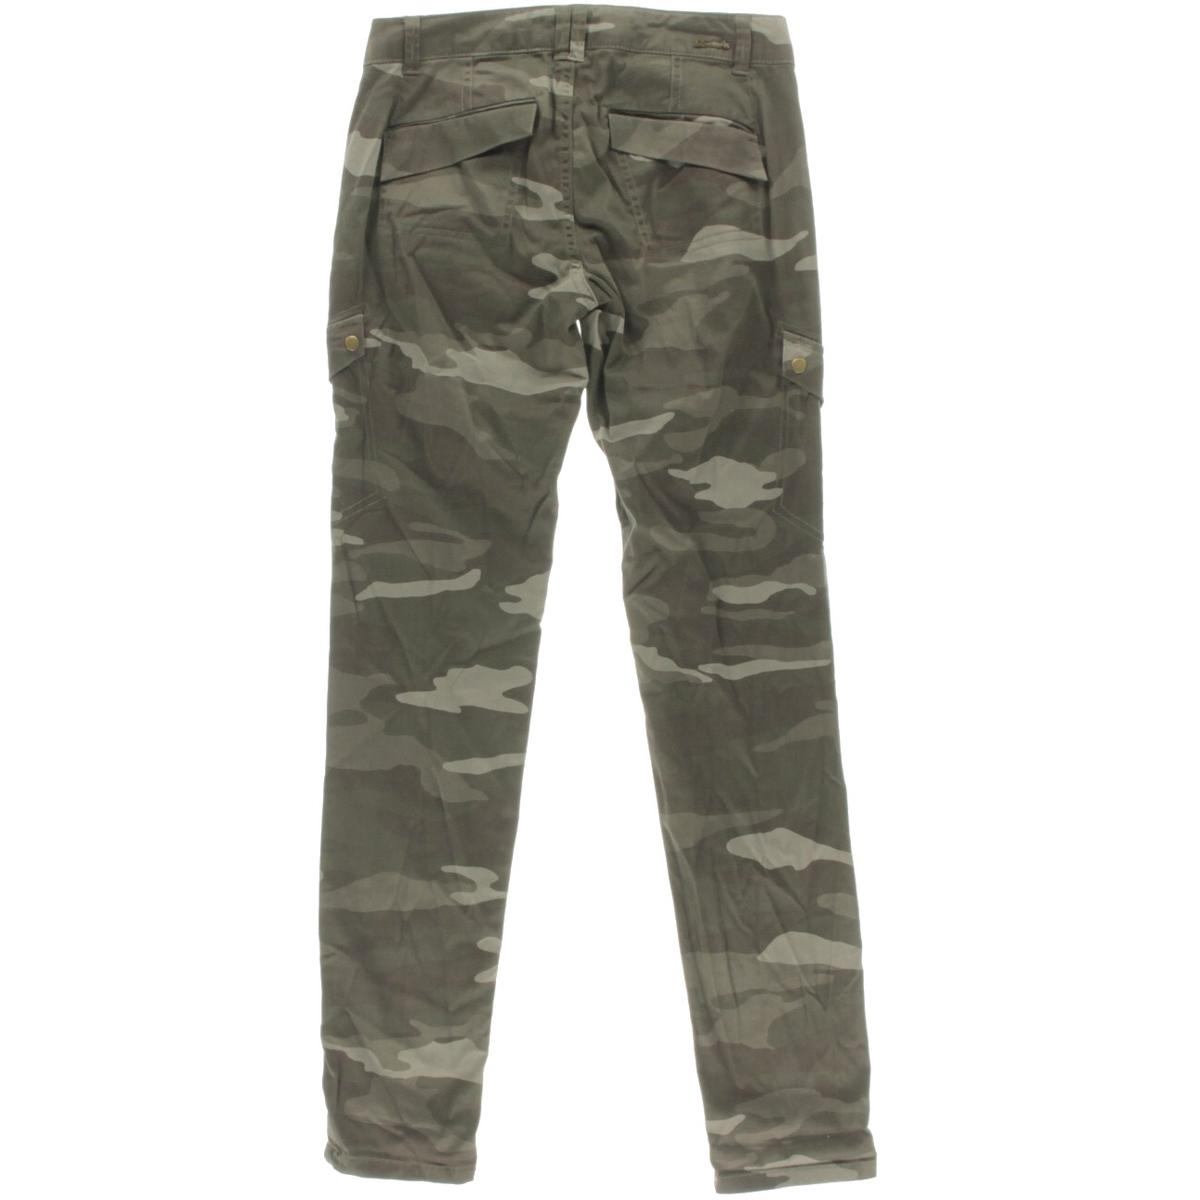 Rewind 9127 Womens Gray Camouflage Stretch Cargo Pants ...